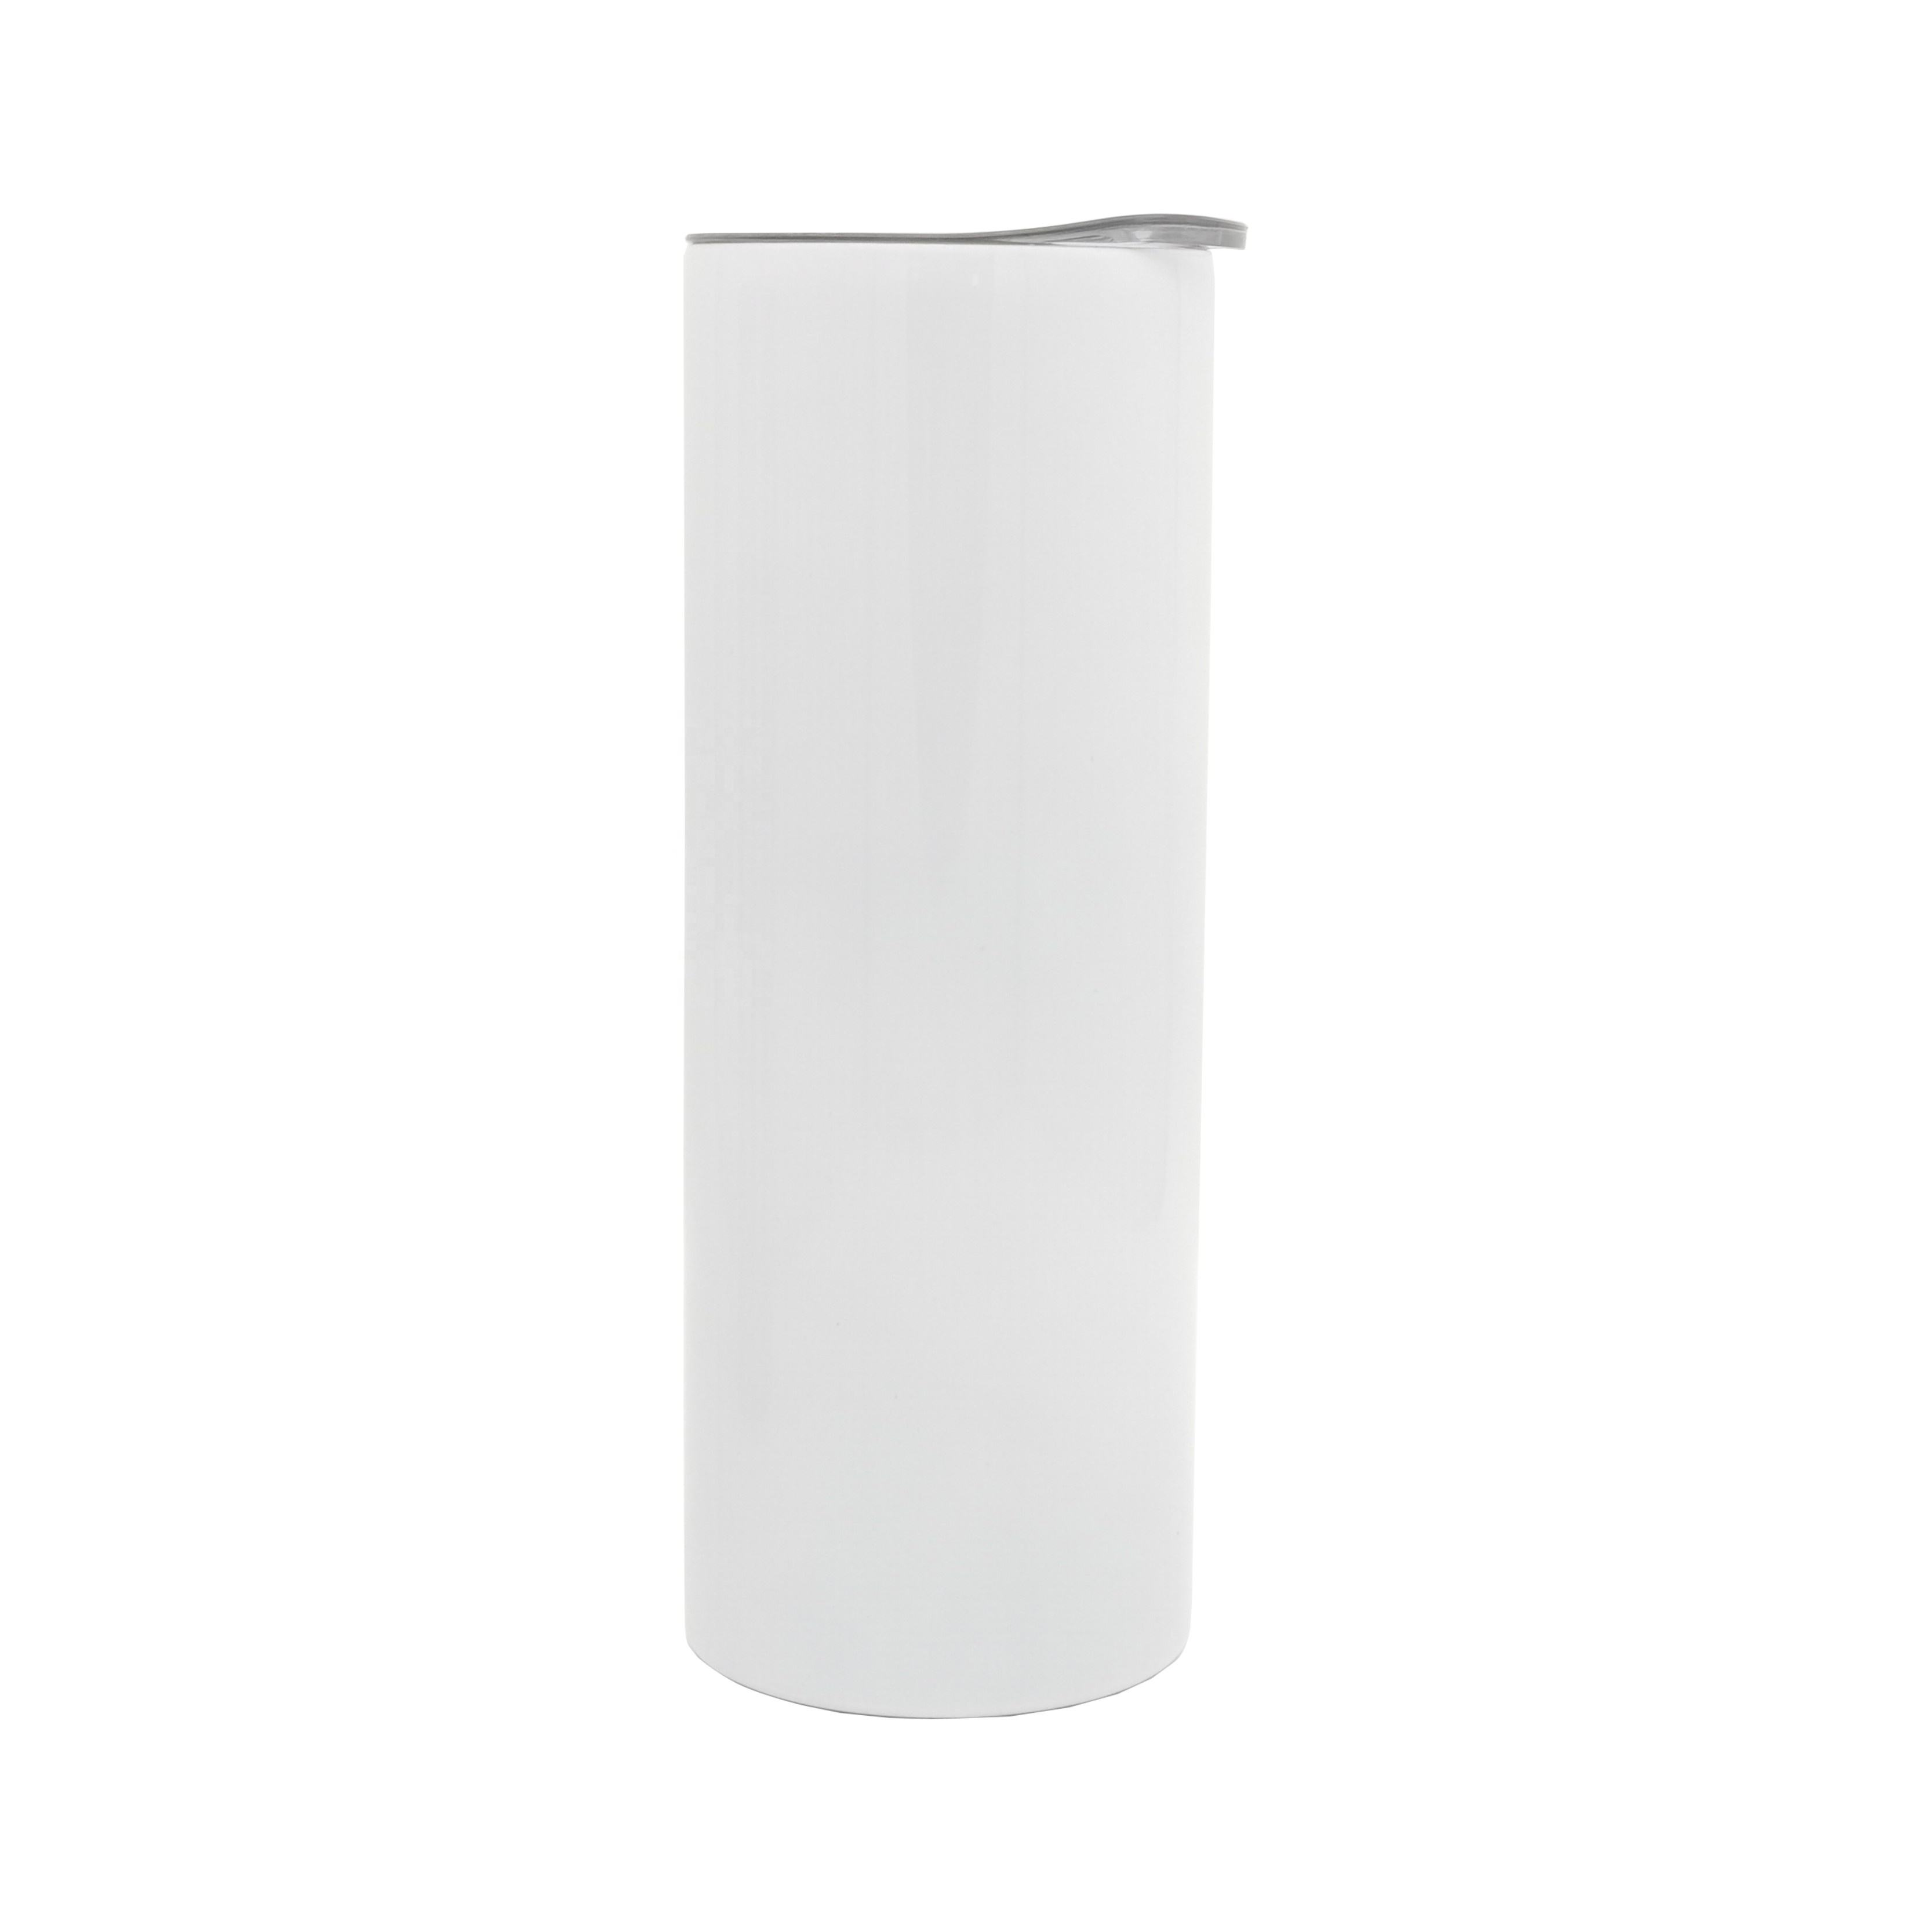 New design 20oz stainless steel sublimation tumbler double walled vacuum insulated straight slim tumbler sublimation blank